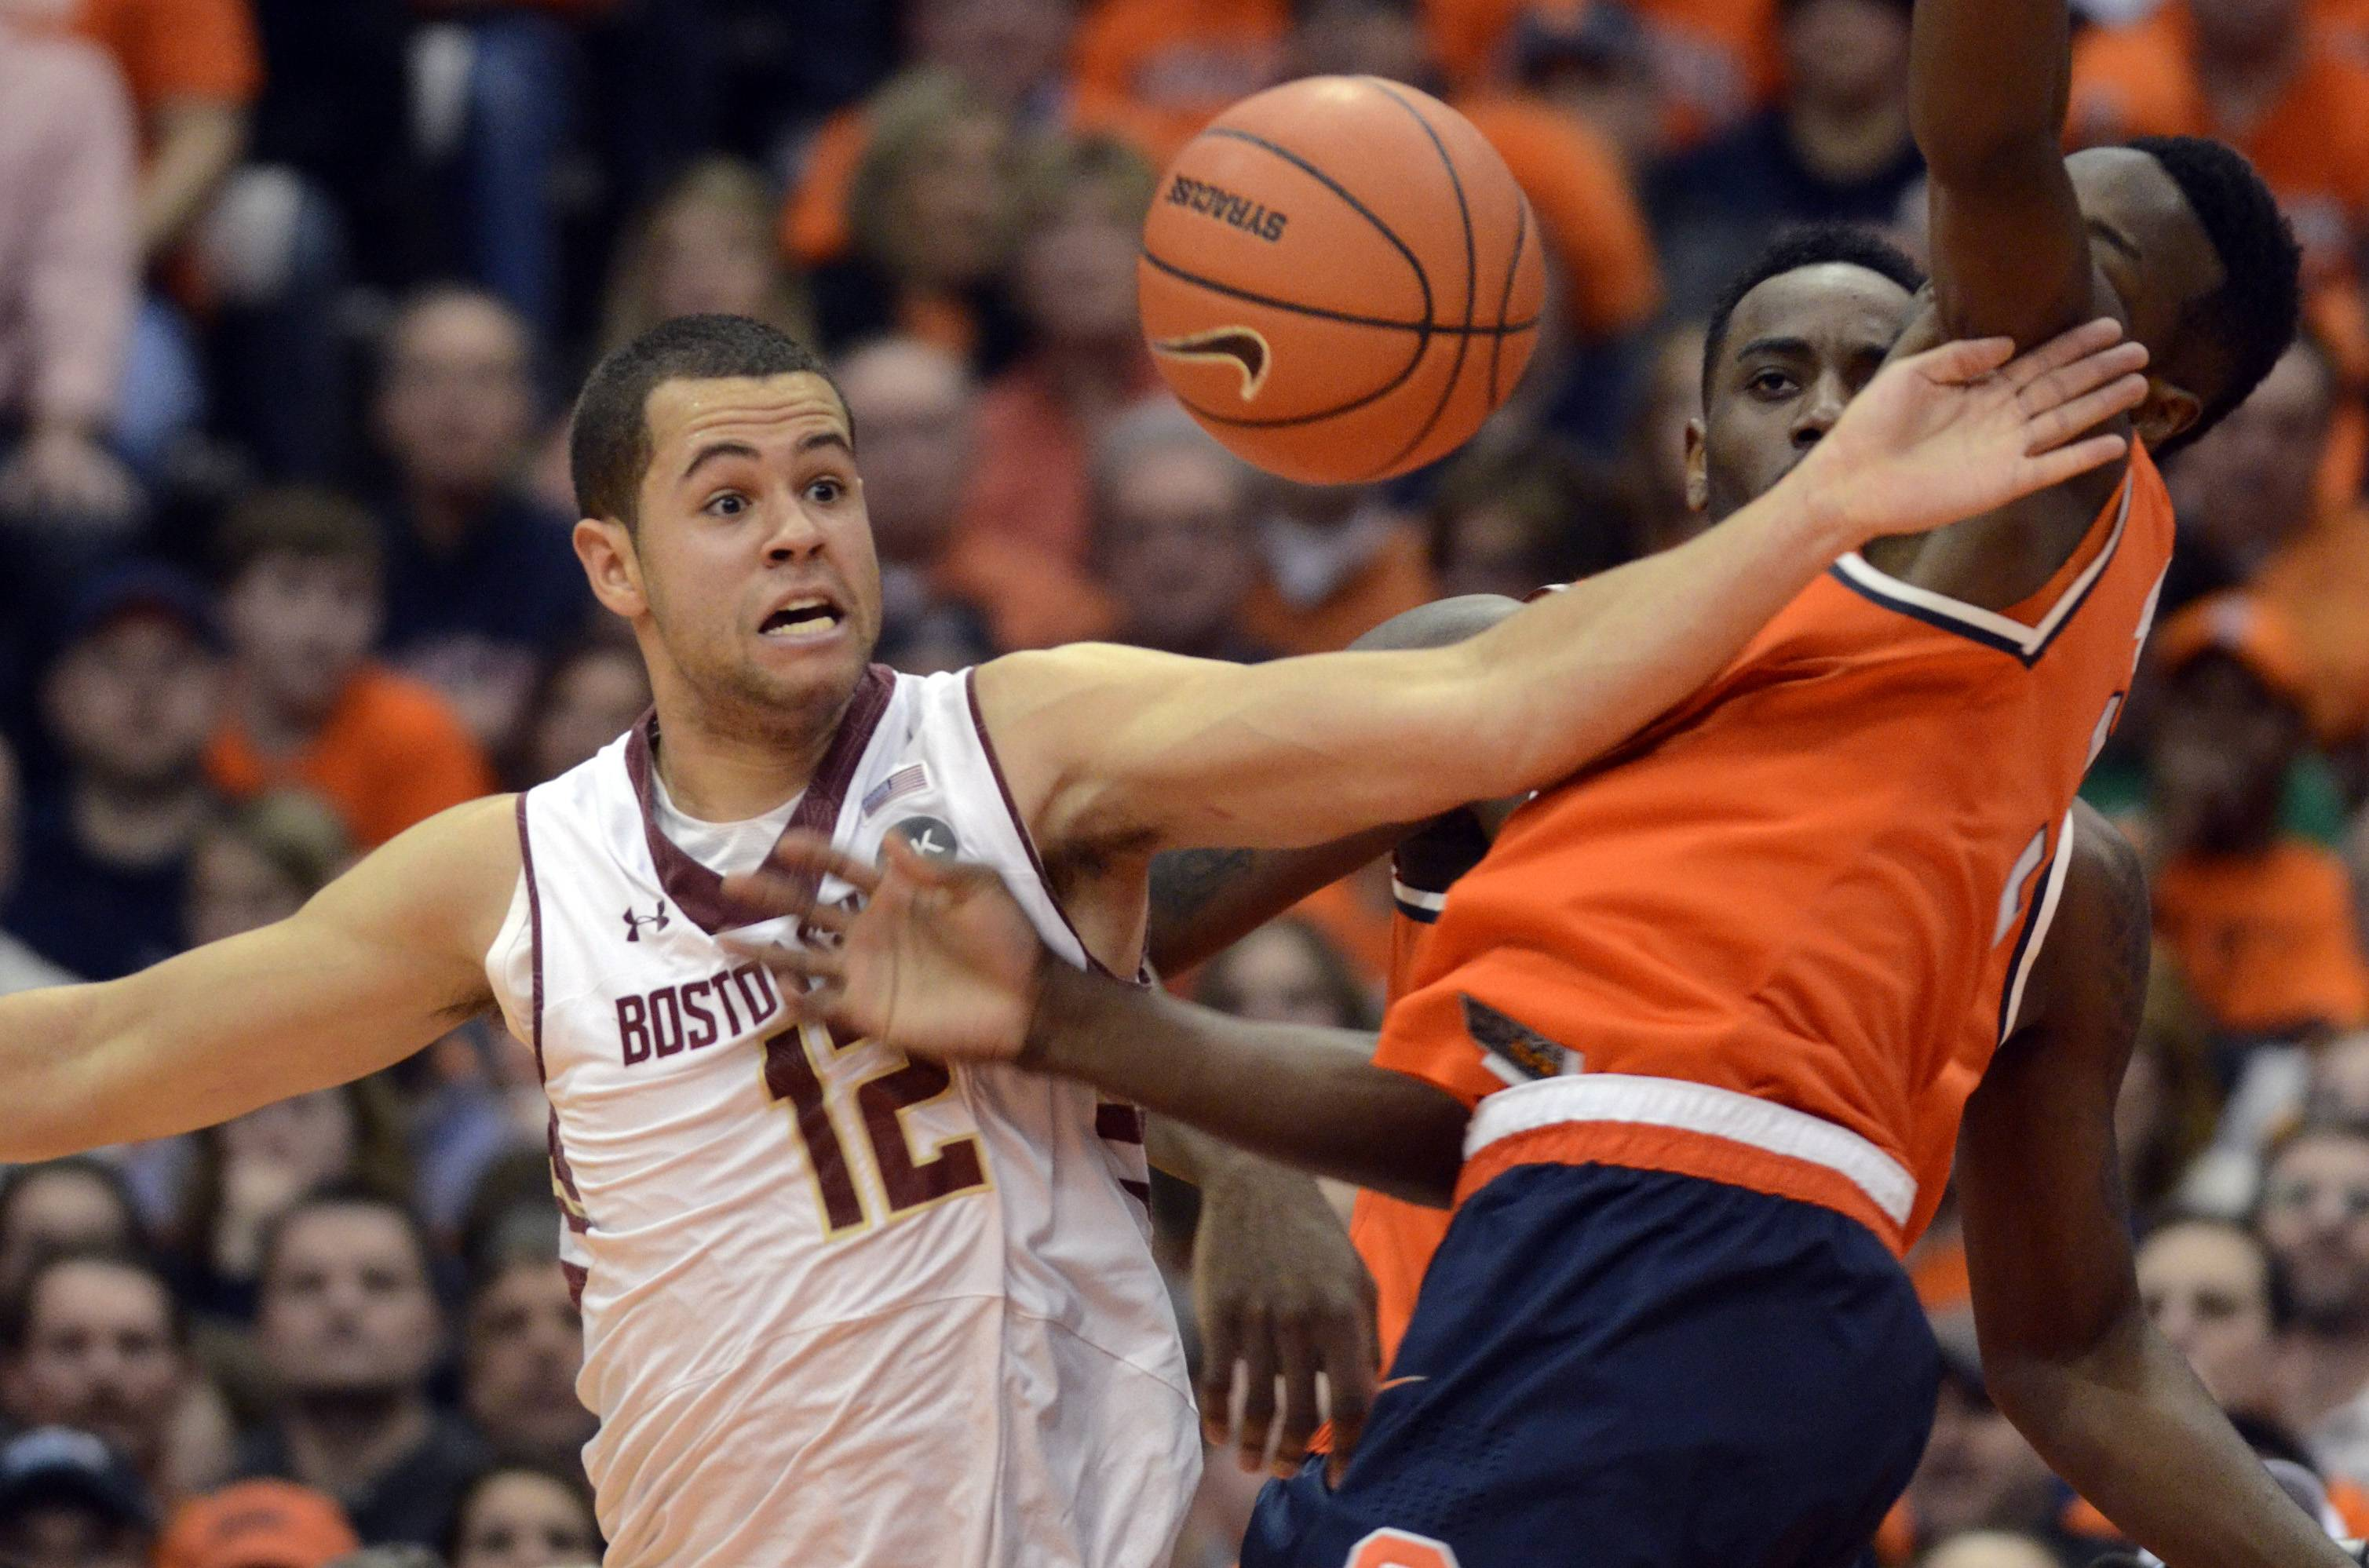 Boston College's Ryan Anderson, left, battles Syracuse's Jerami Grant for a loose ball during the first half of an NCAA college basketball game in Syracuse, N.Y., Wednesday, Feb. 19, 2014. (AP Photo/Kevin Rivoli)